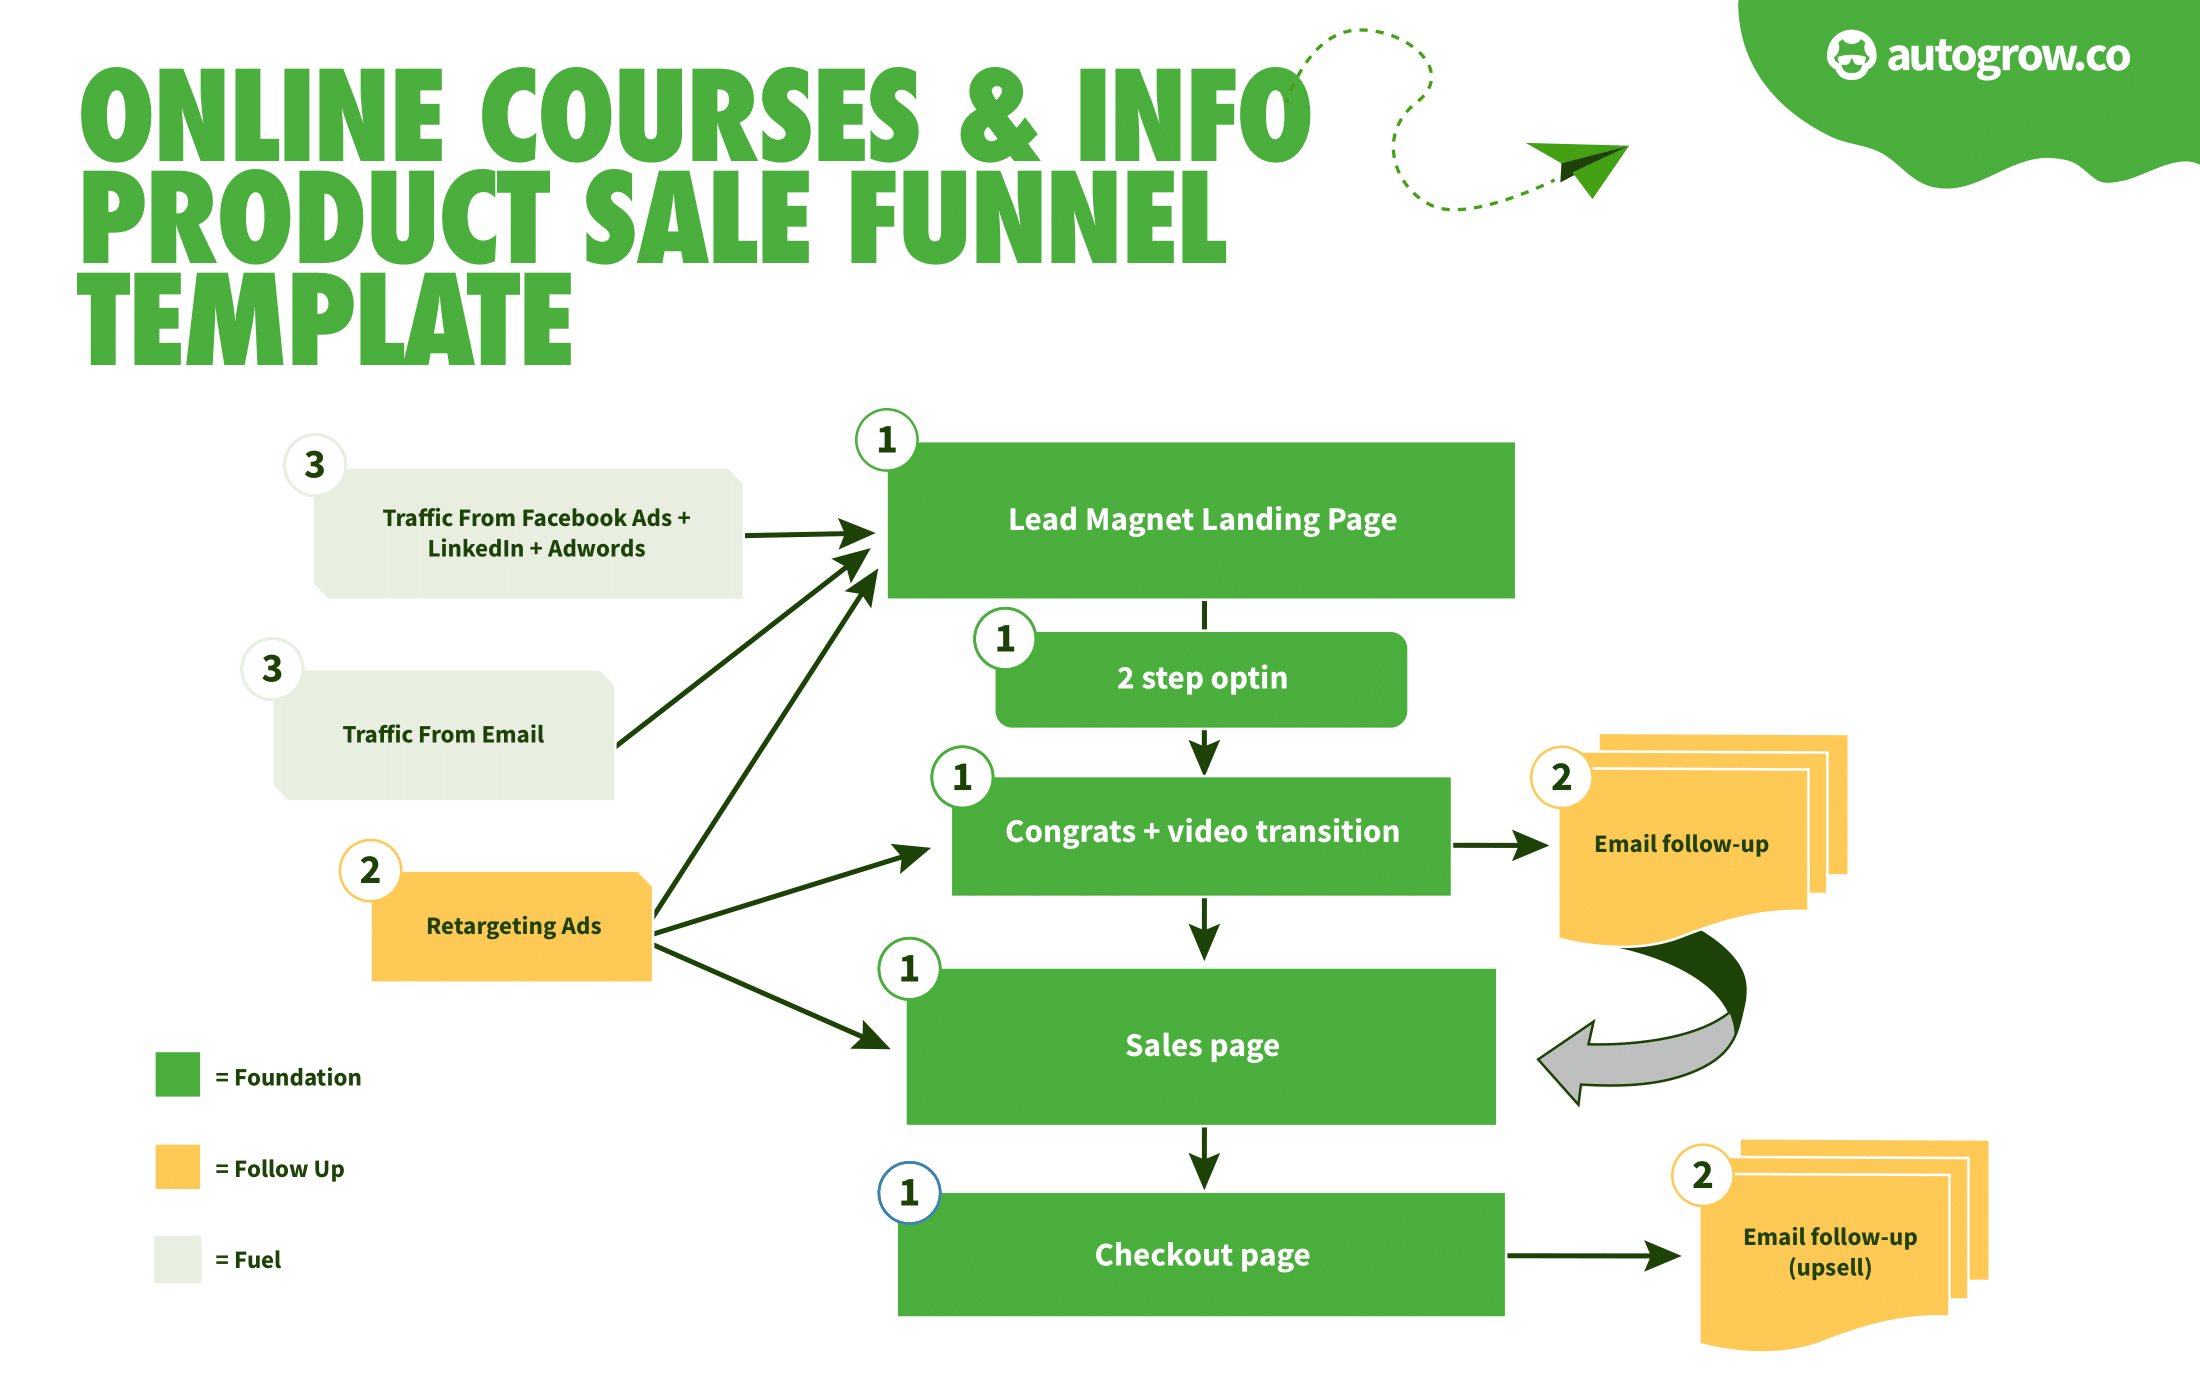 How to Sell Online Courses w/ Our Sales Funnel Template